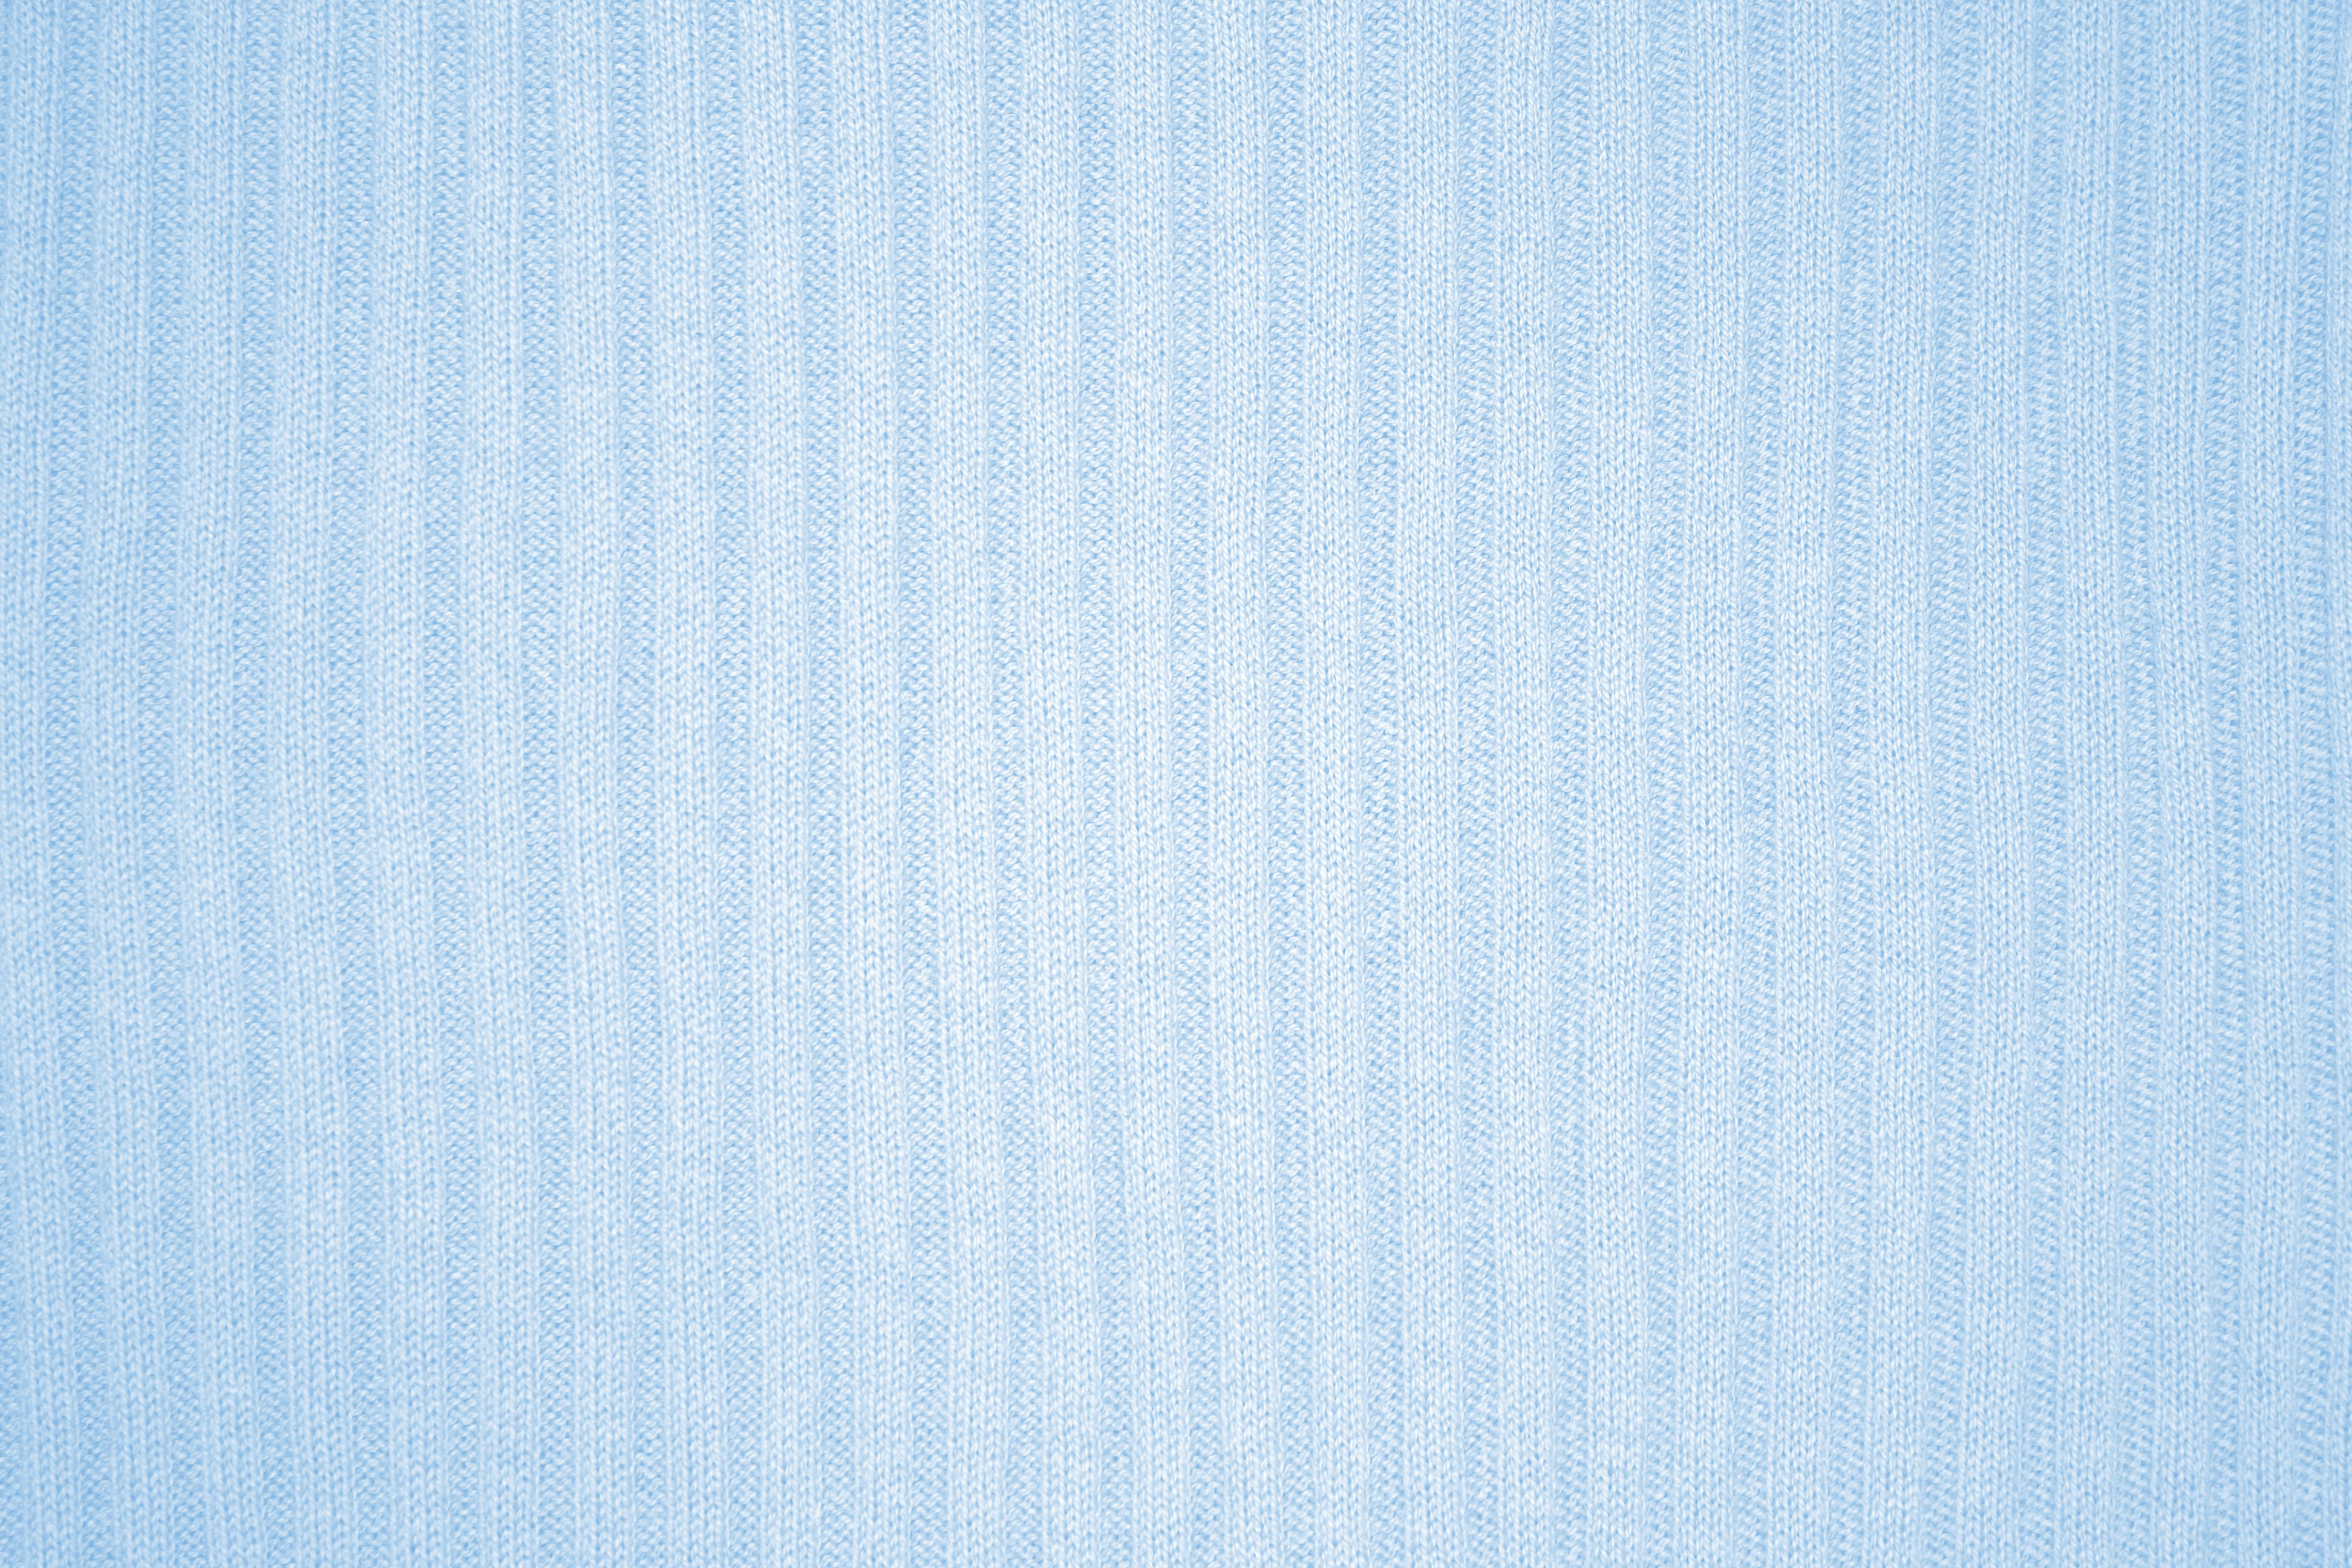 Baby Blue Ribbed Knit Fabric Texture Picture Free Photograph